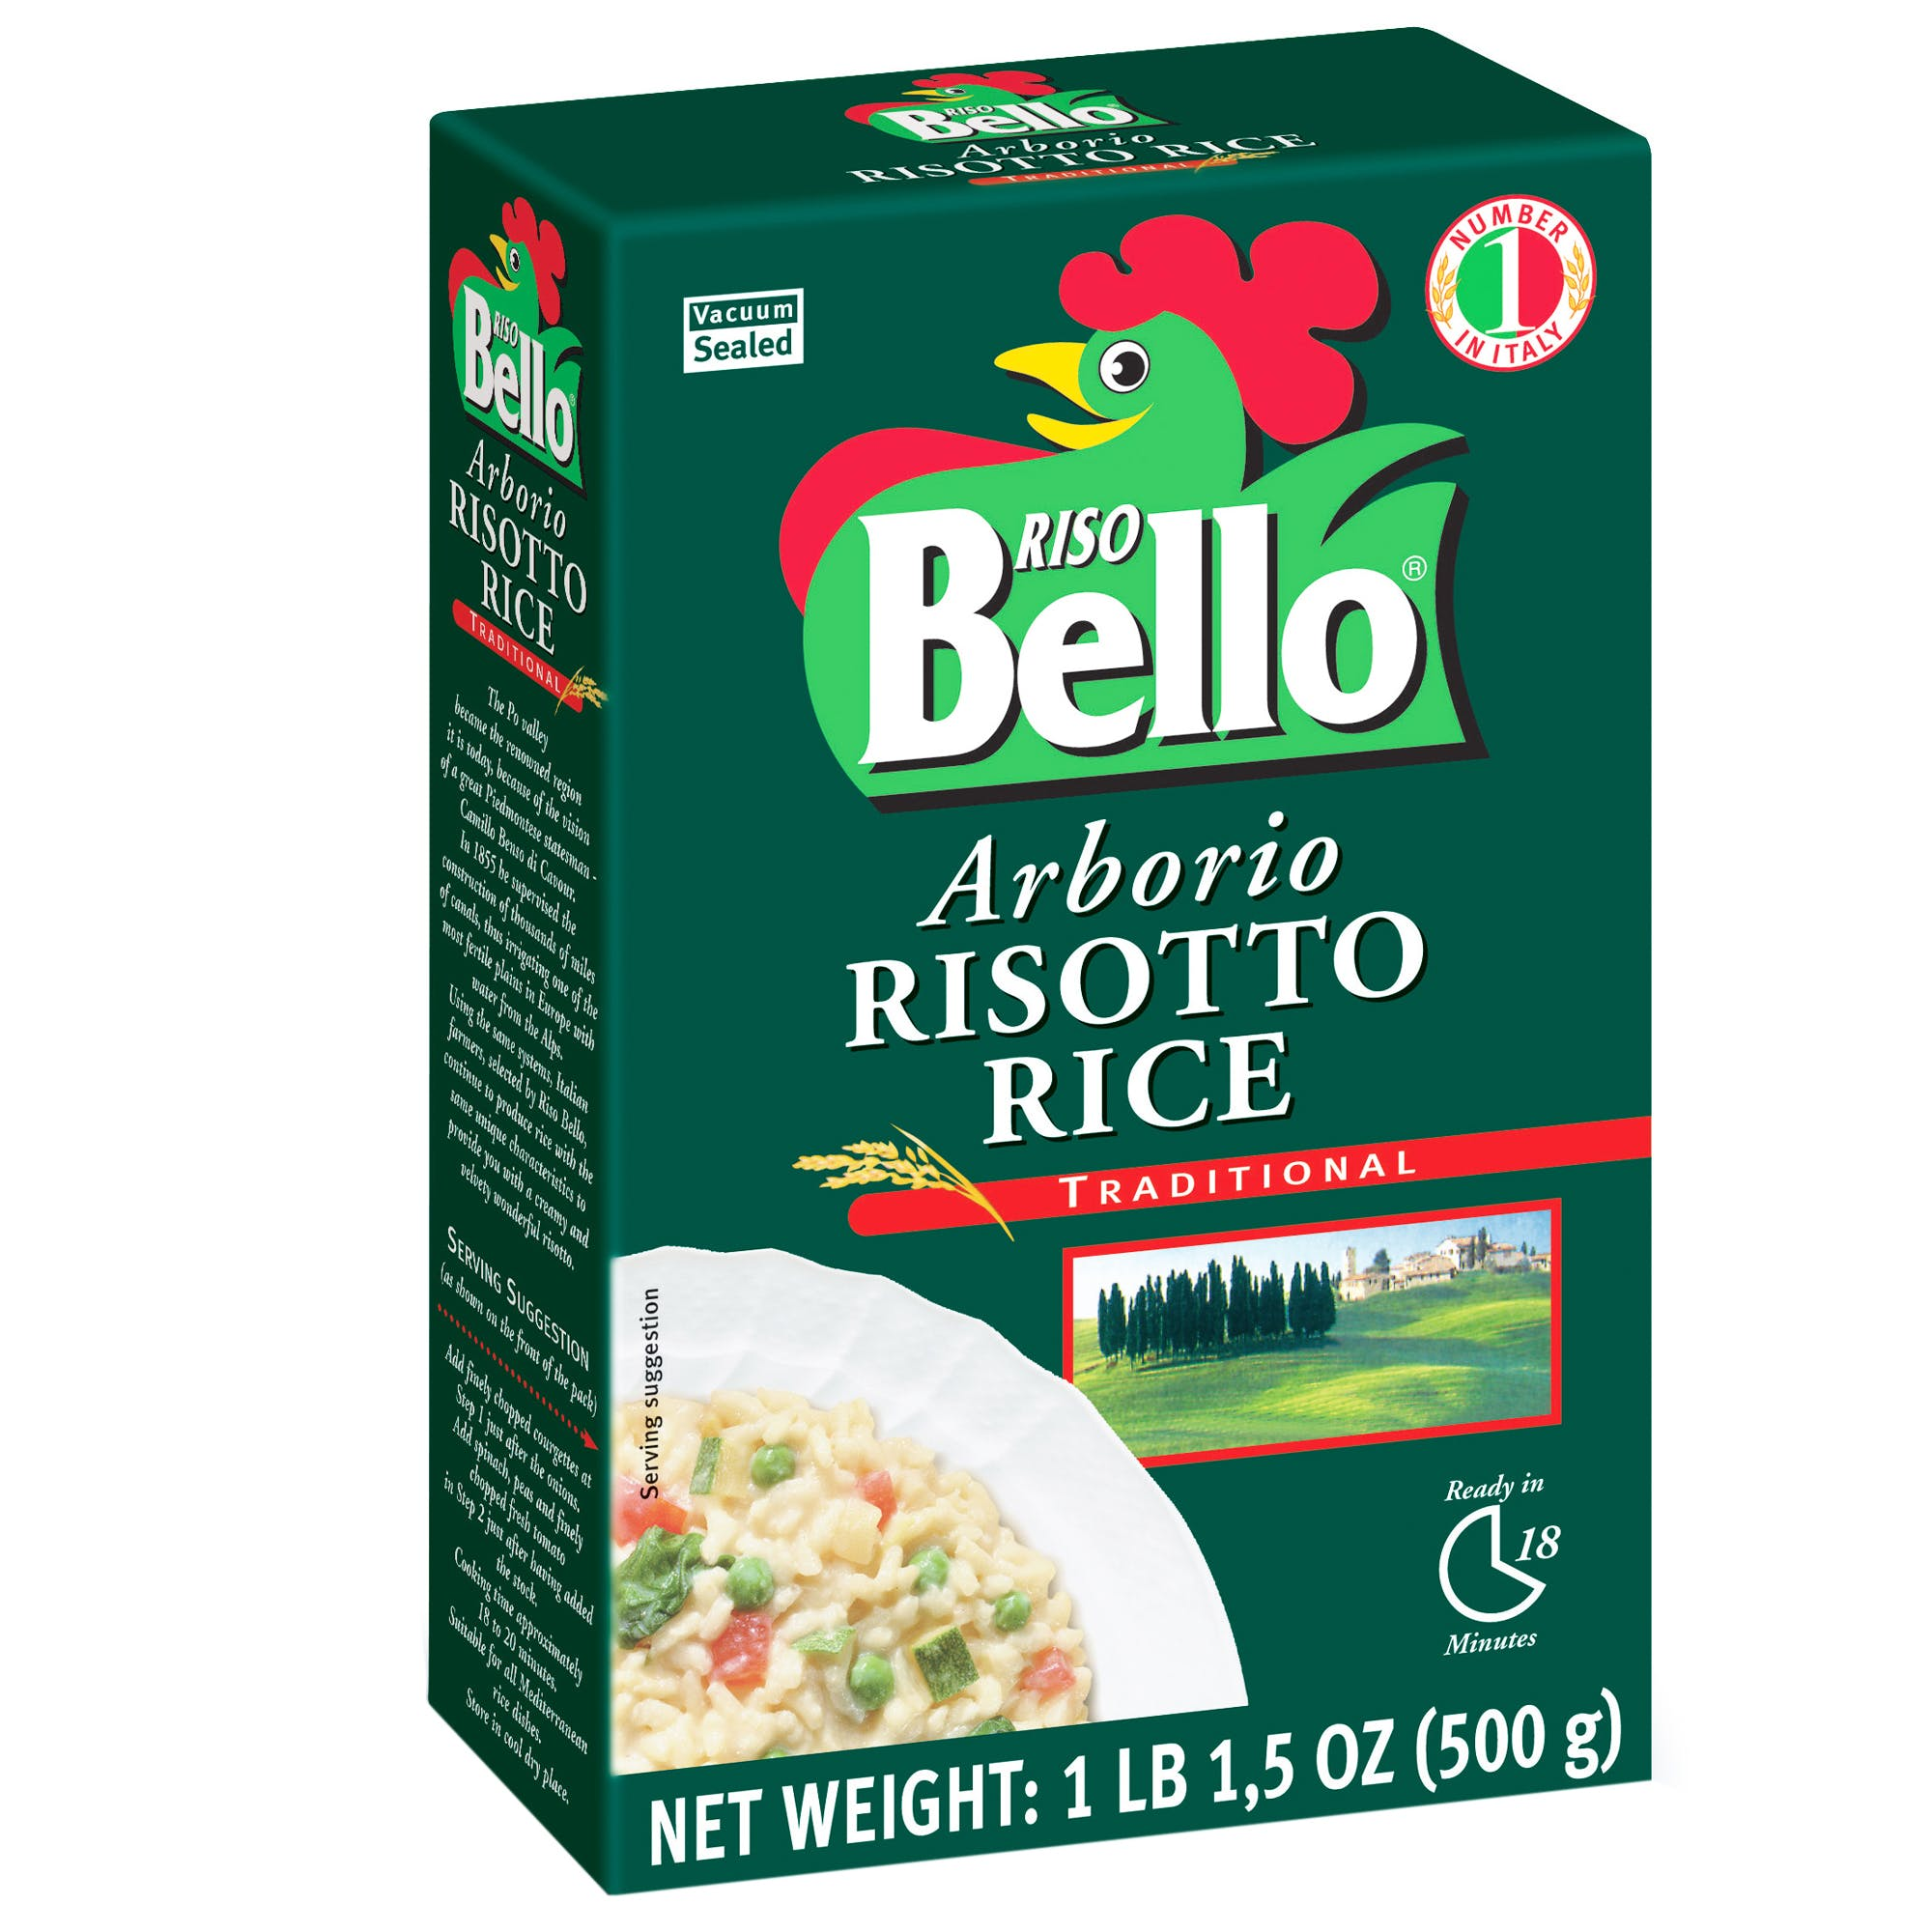 Arborio Risotto Rice Rice sold by M5 Corporation